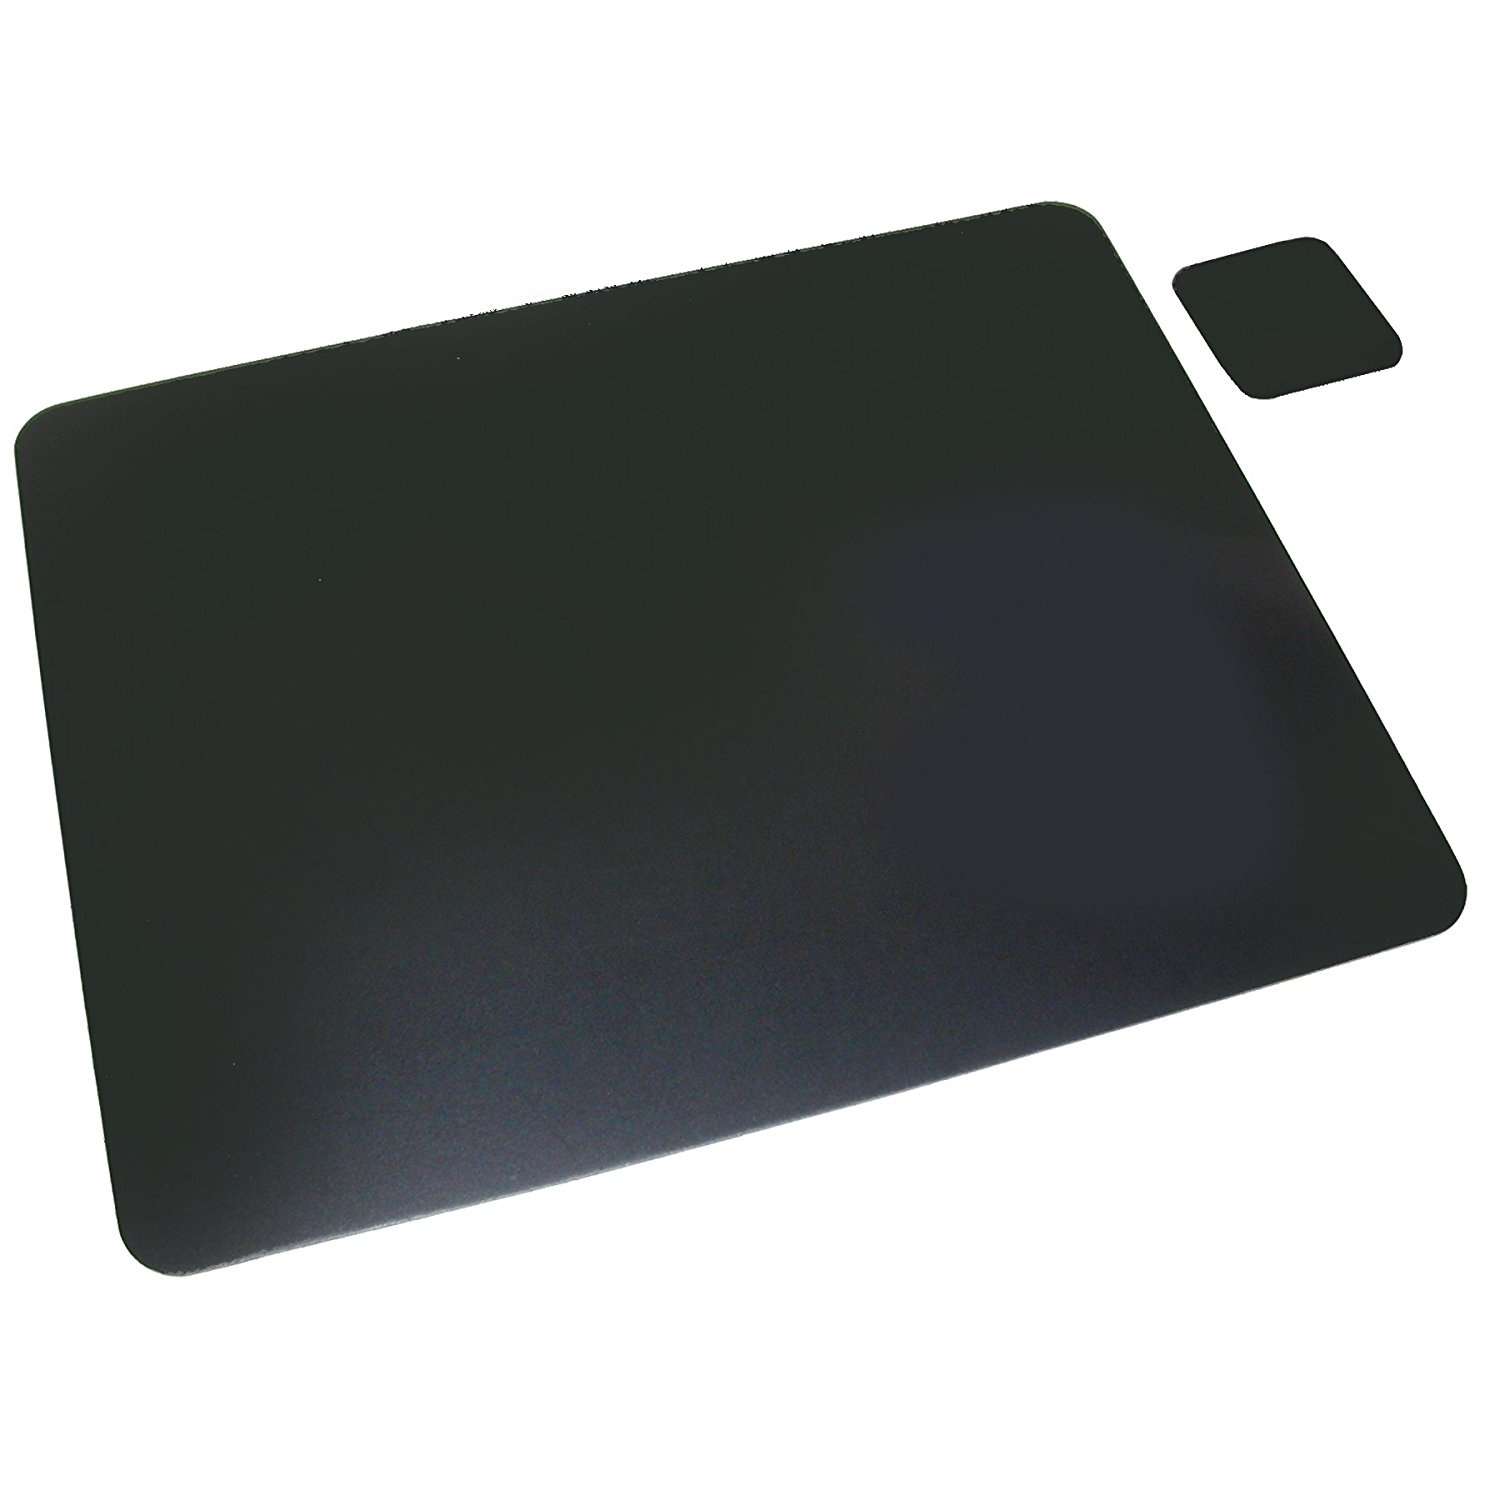 Artistic 50cm X 90cm Bonded Leather Desk Pad W Coaster Black 2036le By For Stationery In Fiji